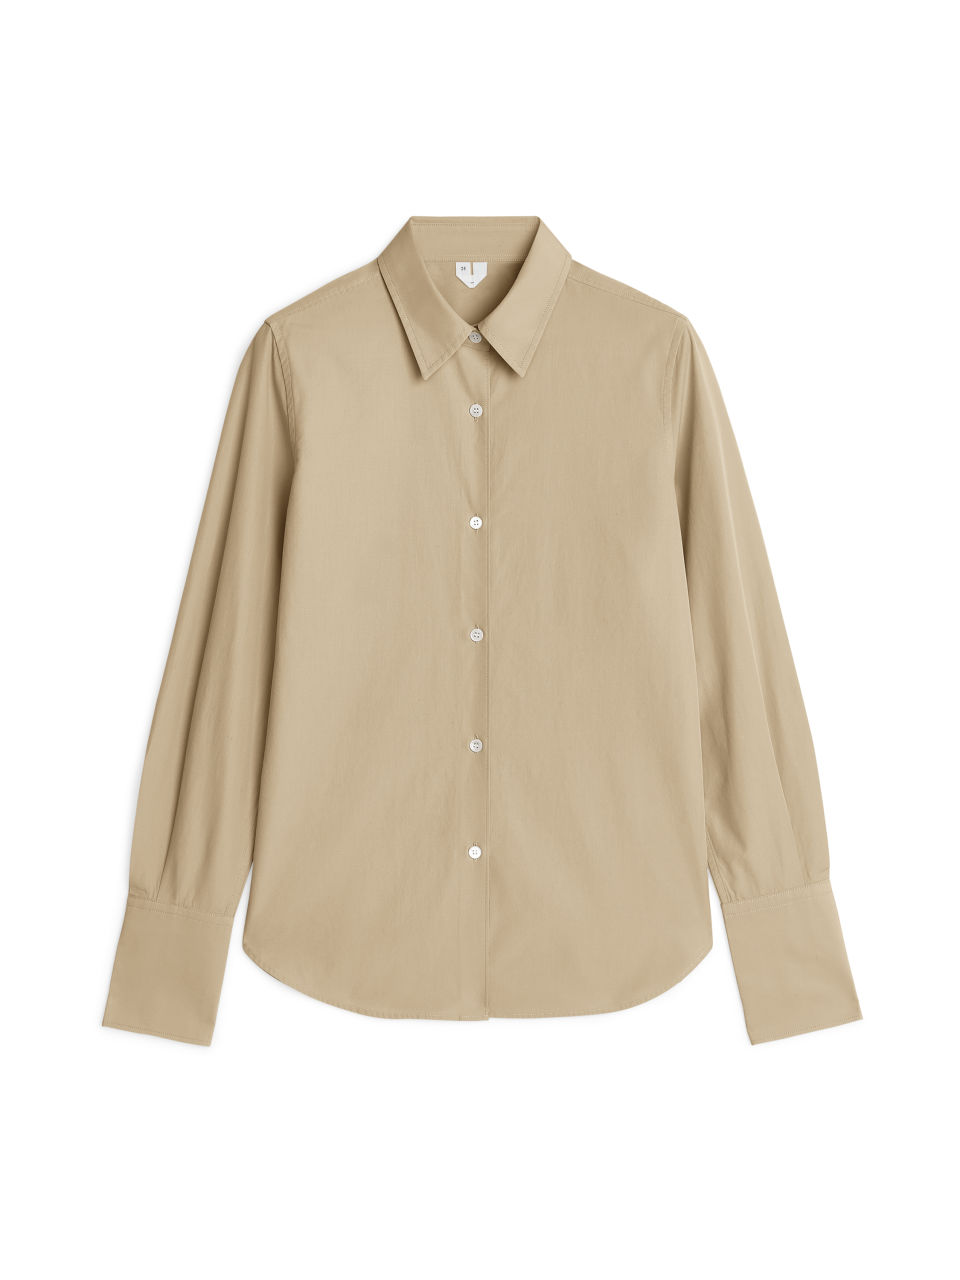 Front image of Arket slim poplin shirt in beige